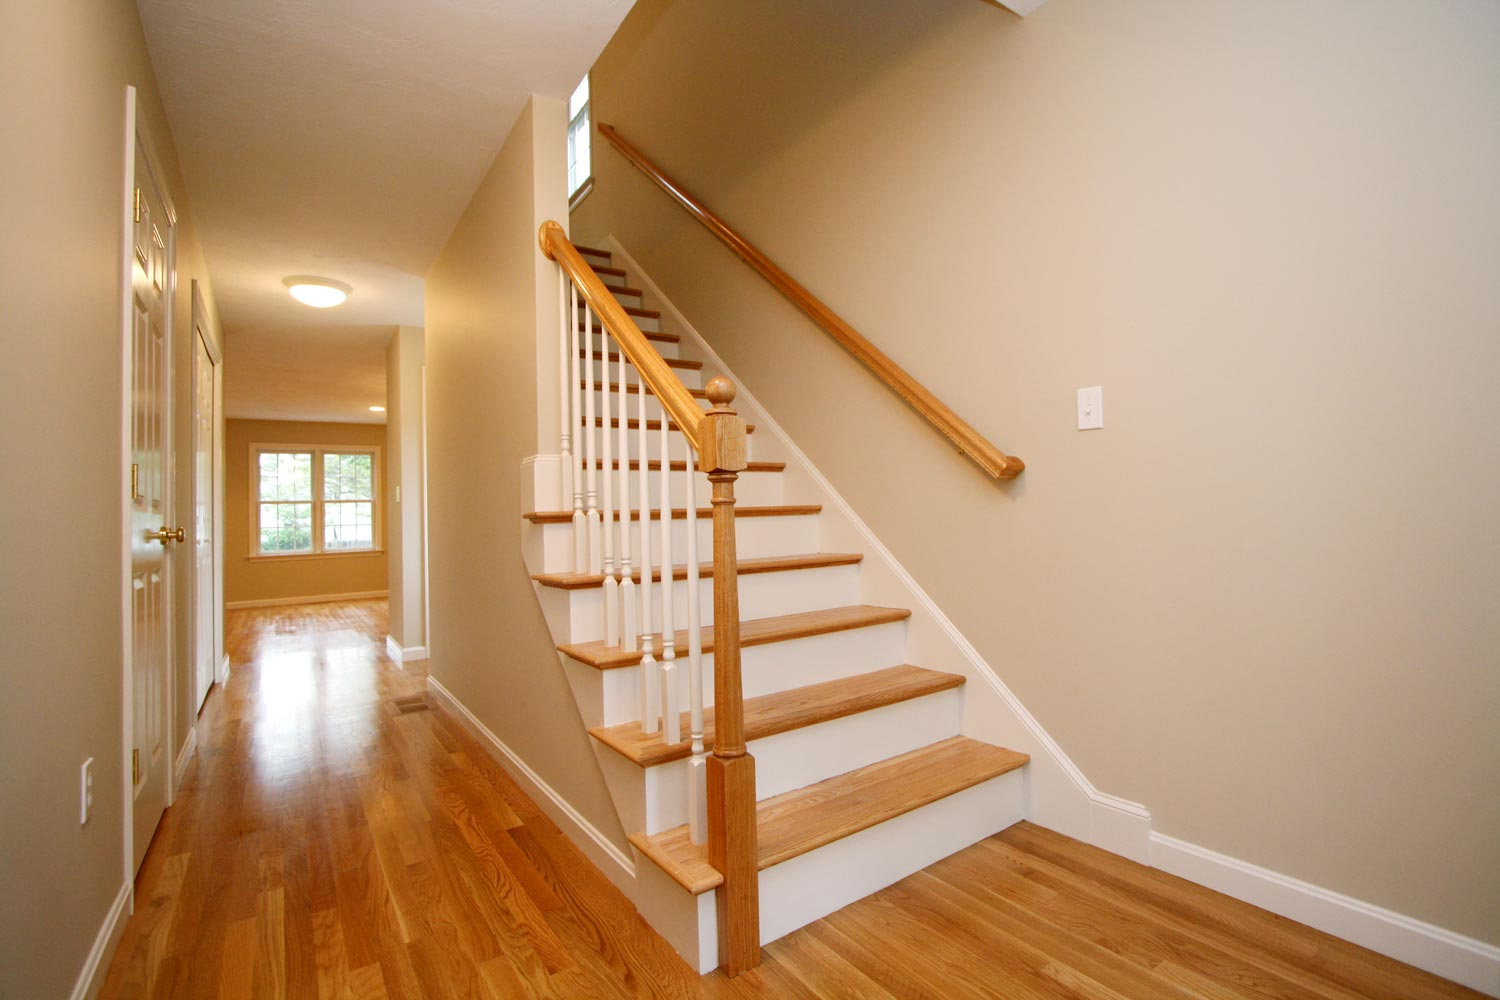 dog kennel in garage ideas - Stairs For House – Stair case design